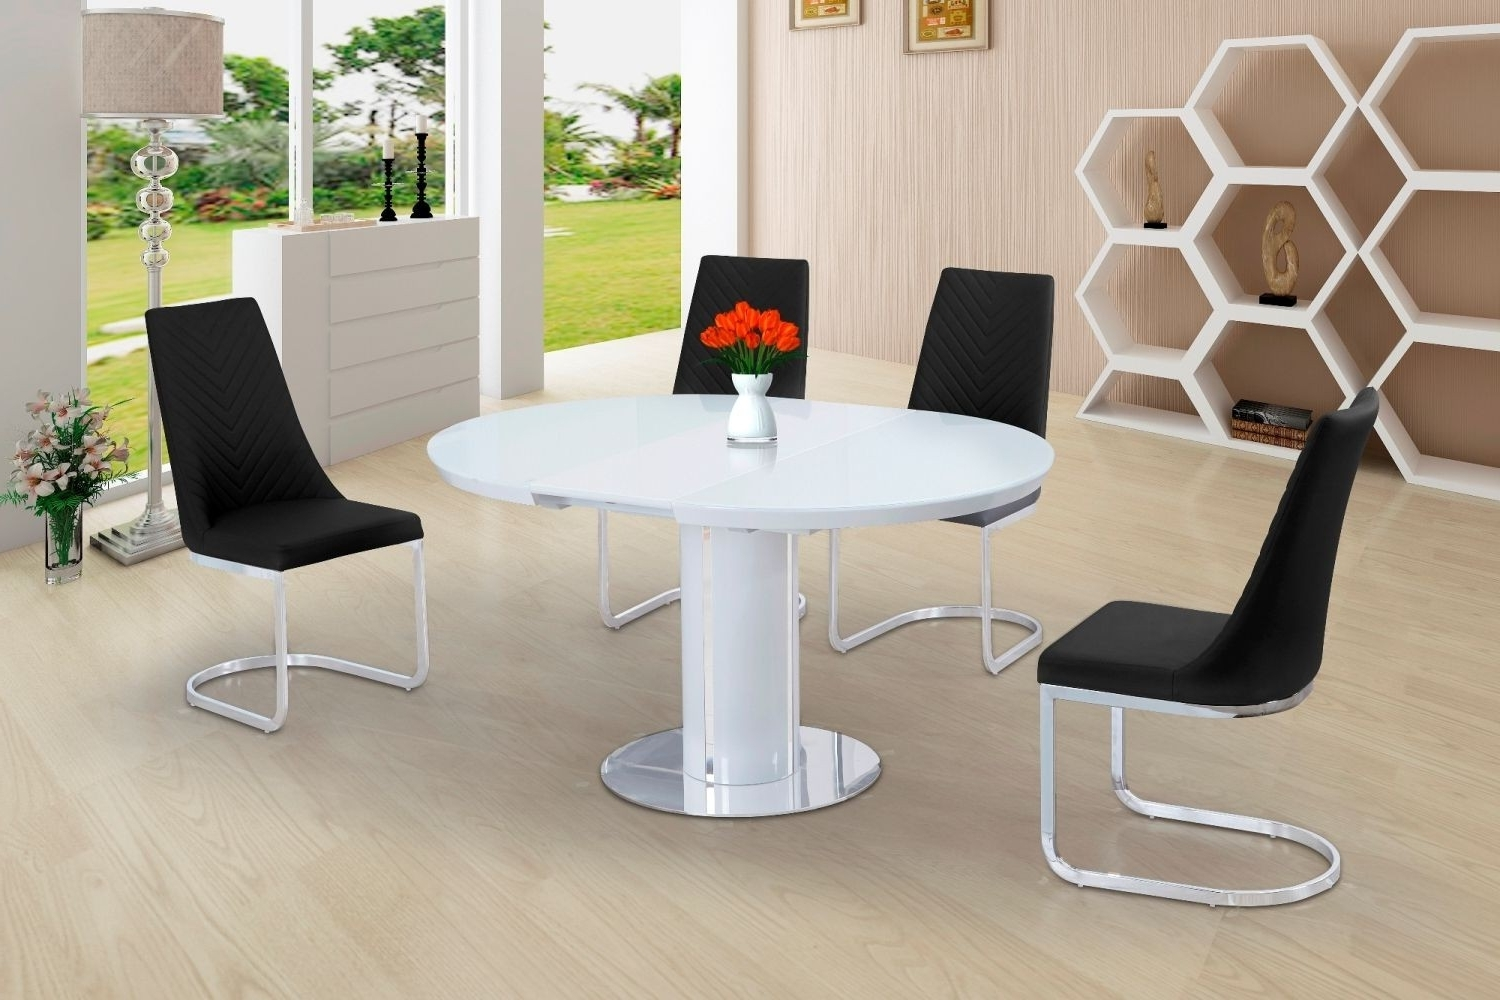 Buy Space Saving White Gloss Extending Round Dining Table With Regard To Recent Small Round Extending Dining Tables (View 5 of 25)